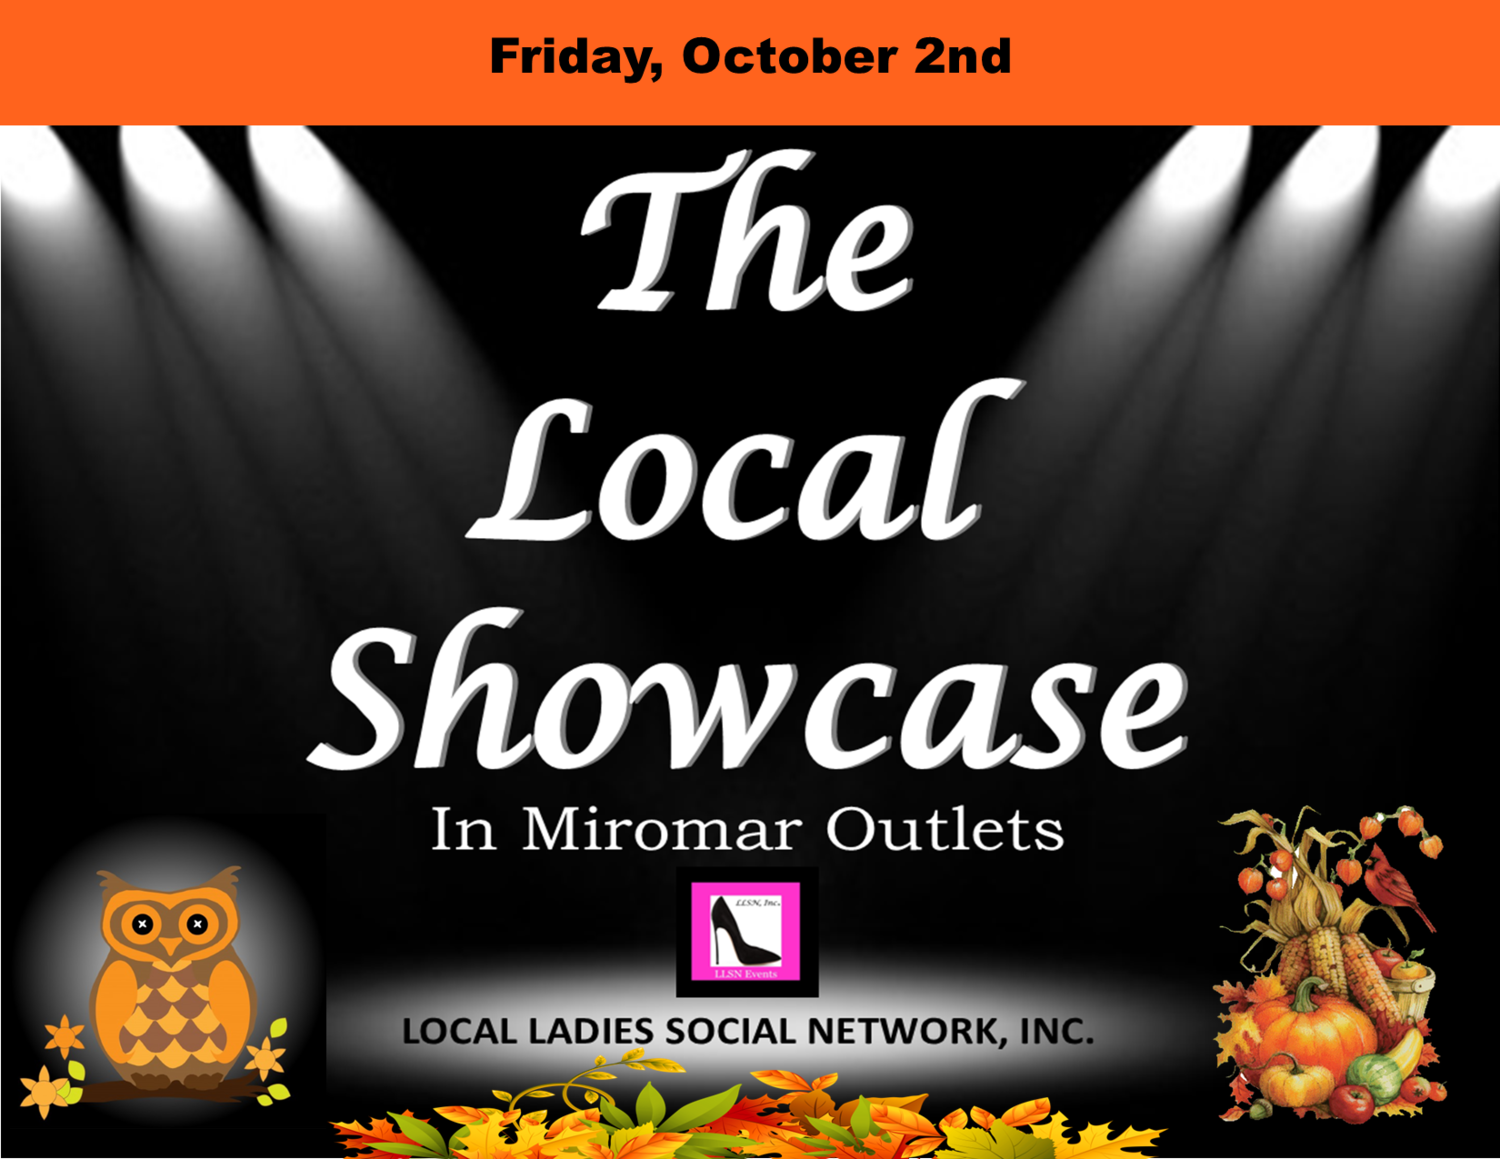 Friday, October 2nd 11am-7pm